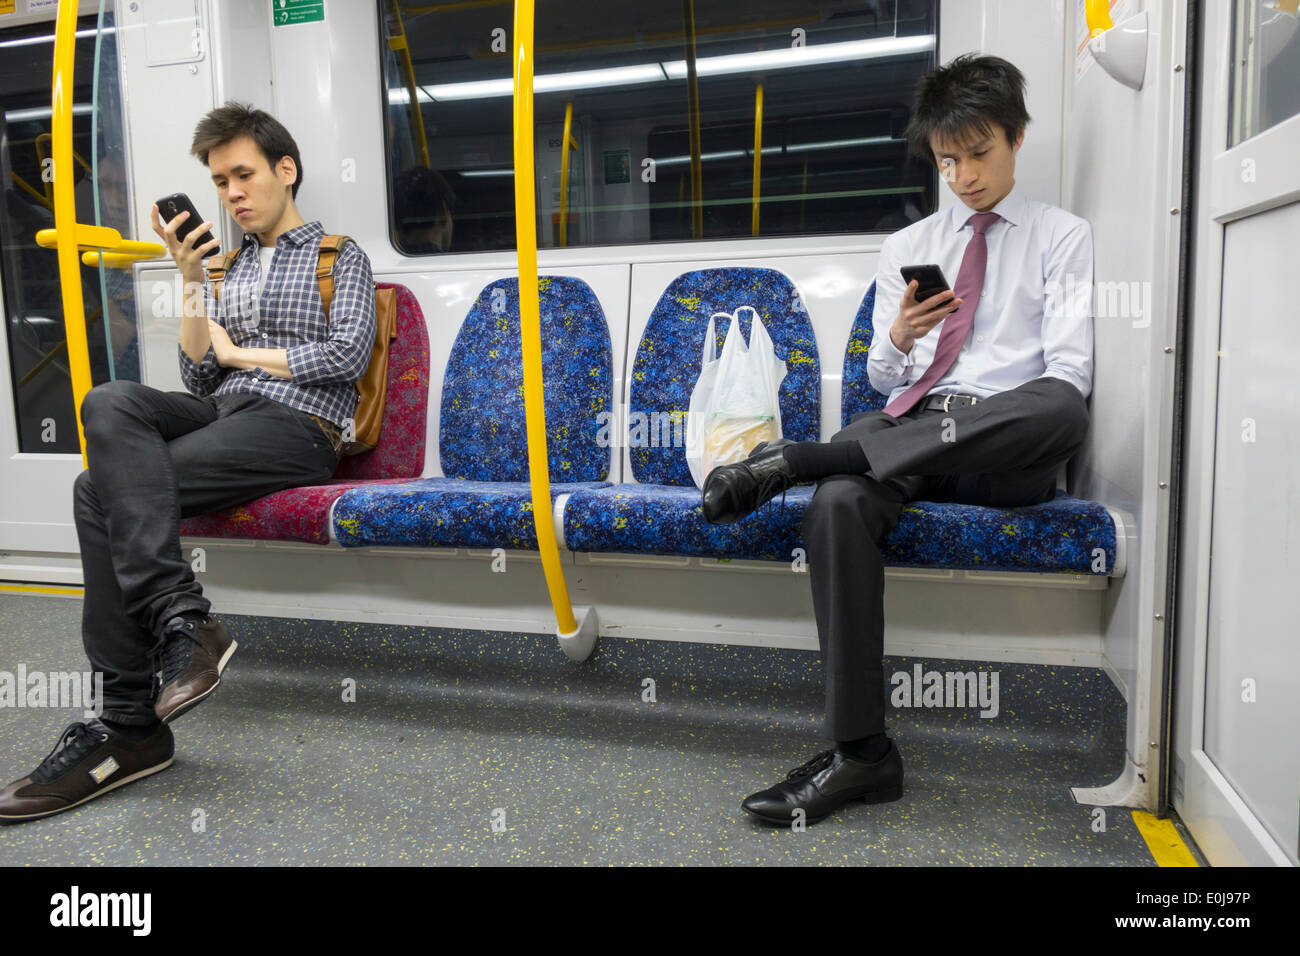 Sydney NSW Australie Nouvelle Galles du sud de la ville en transports publics Trains cabine passagers à bord les coureurs homme asiatique à la co messages smartphone Photo Stock